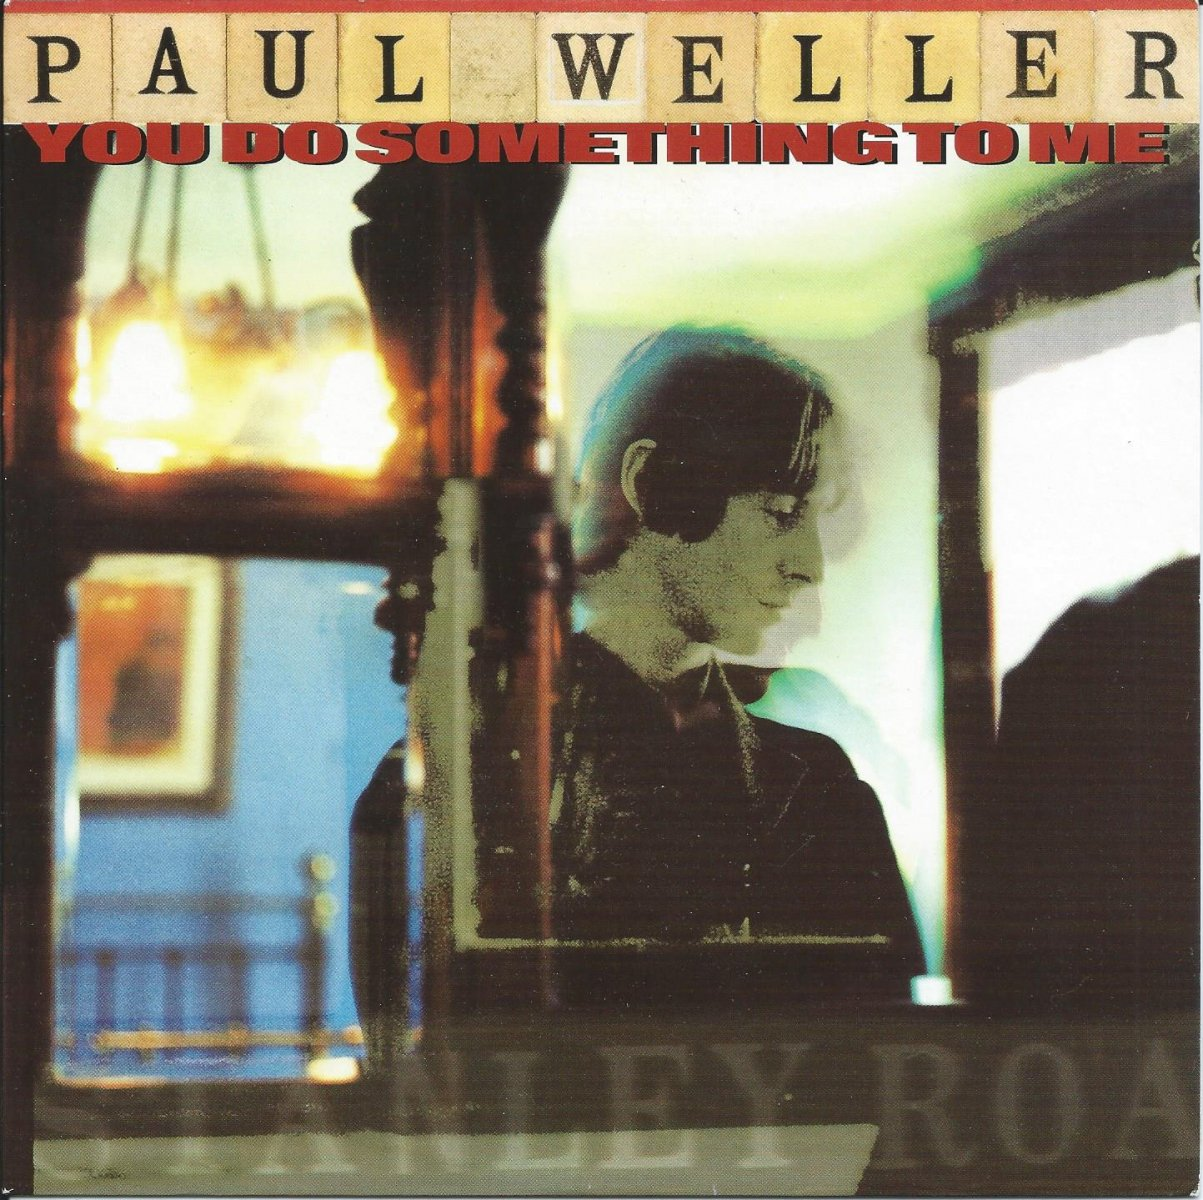 PAUL WELLER / YOU DO SOMETHING TO ME / MY WHOLE WORLD IS FALLING DOWN (7